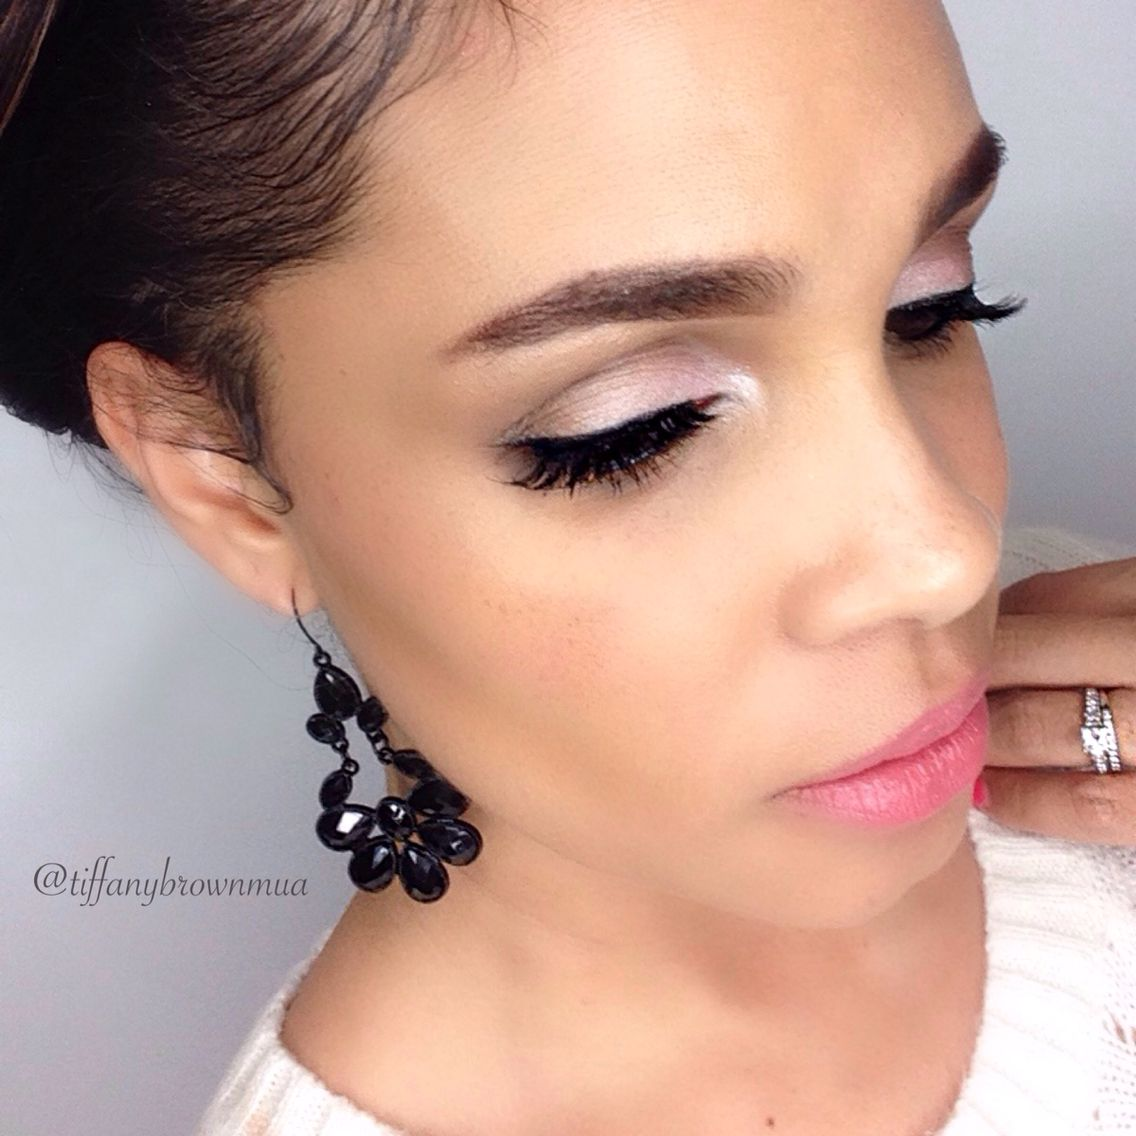 Simple Makeup Look For Valentines Day Makeup Valentinesday Loveday Makeuplook Eyebrows Natural Makeup Looks Natural Makeup Makeup Inspiration